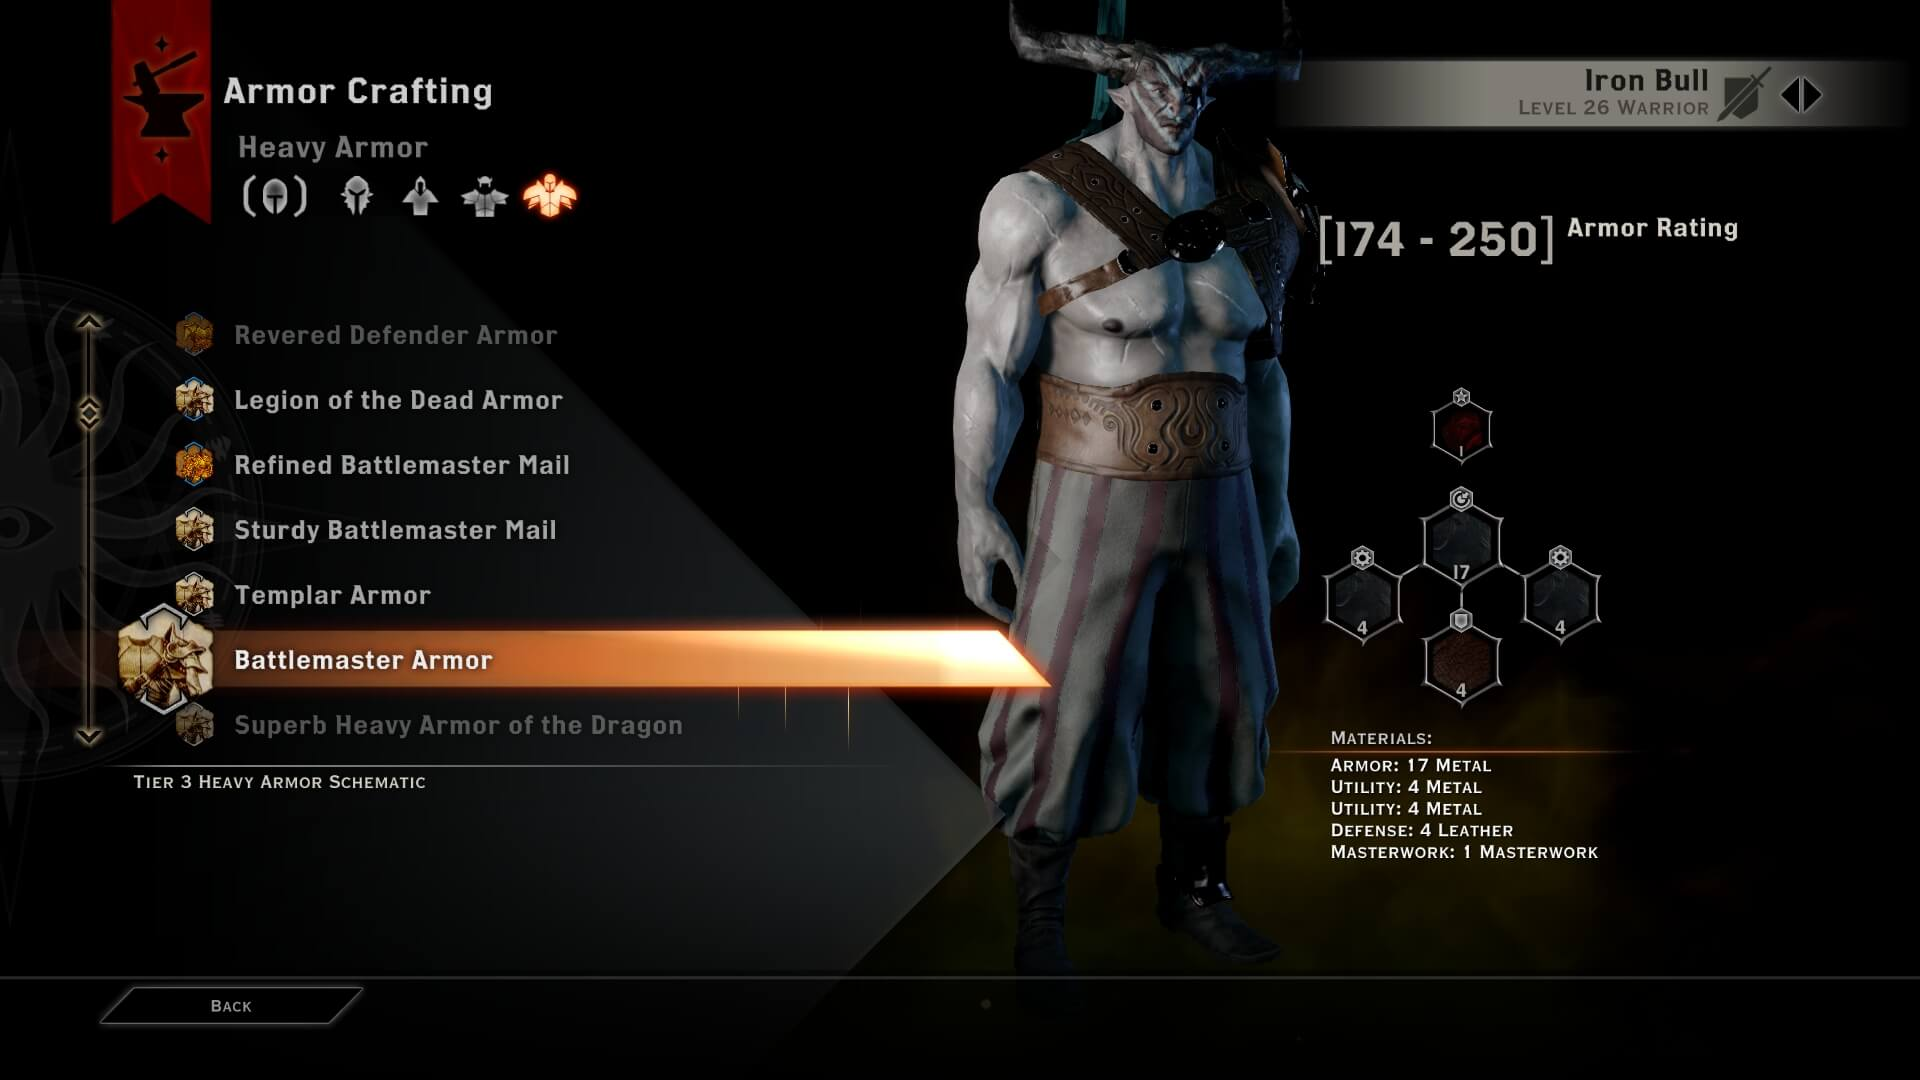 Dragon Age Inquisition Best Armor Accessories Here's the list of mods i'm currently using to make emmie so gosh darn pretty! dragon age inquisition best armor